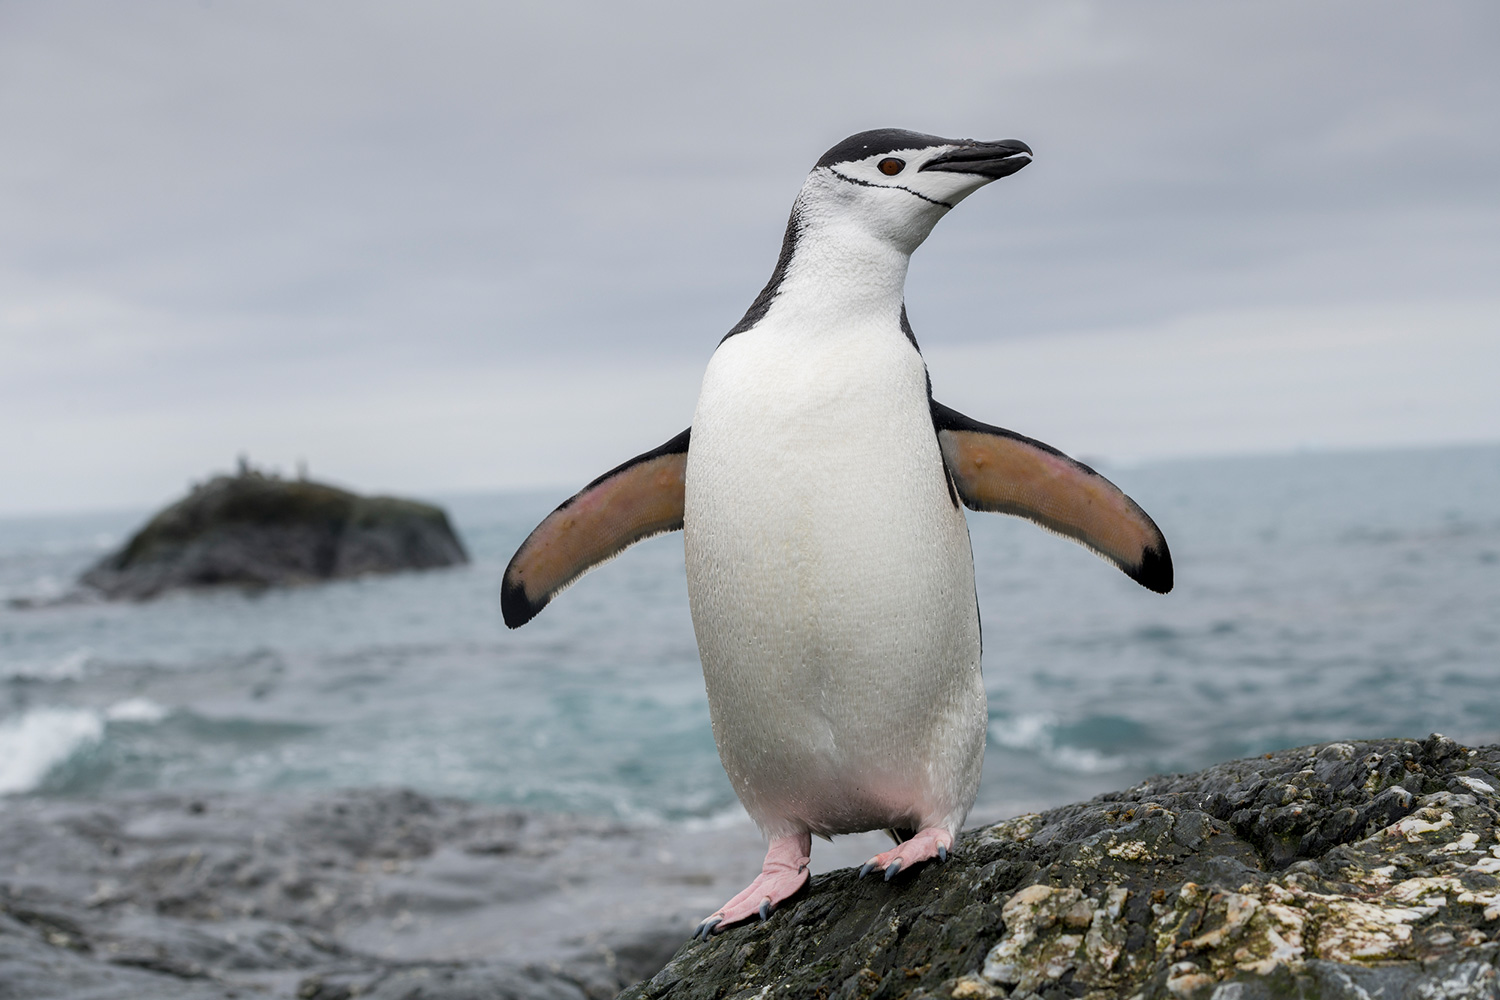 Chinstrap penguin on the shore of Elephant Island in Antarctica. Greenpeace is in the Antarctic to investigate the impacts of the climate crisis as part of the Protect the Oceans Expedition, a year long pole to pole ship tour, campaigning for the establishment of ocean sanctuaries to safeguard this frozen region and its penguins, seals and whales, and to help address the climate emergency. (This picture was taken in 2020 during the Antarctic leg of the Pole to Pole expedition under the Dutch permit number RWS-2019/40813)